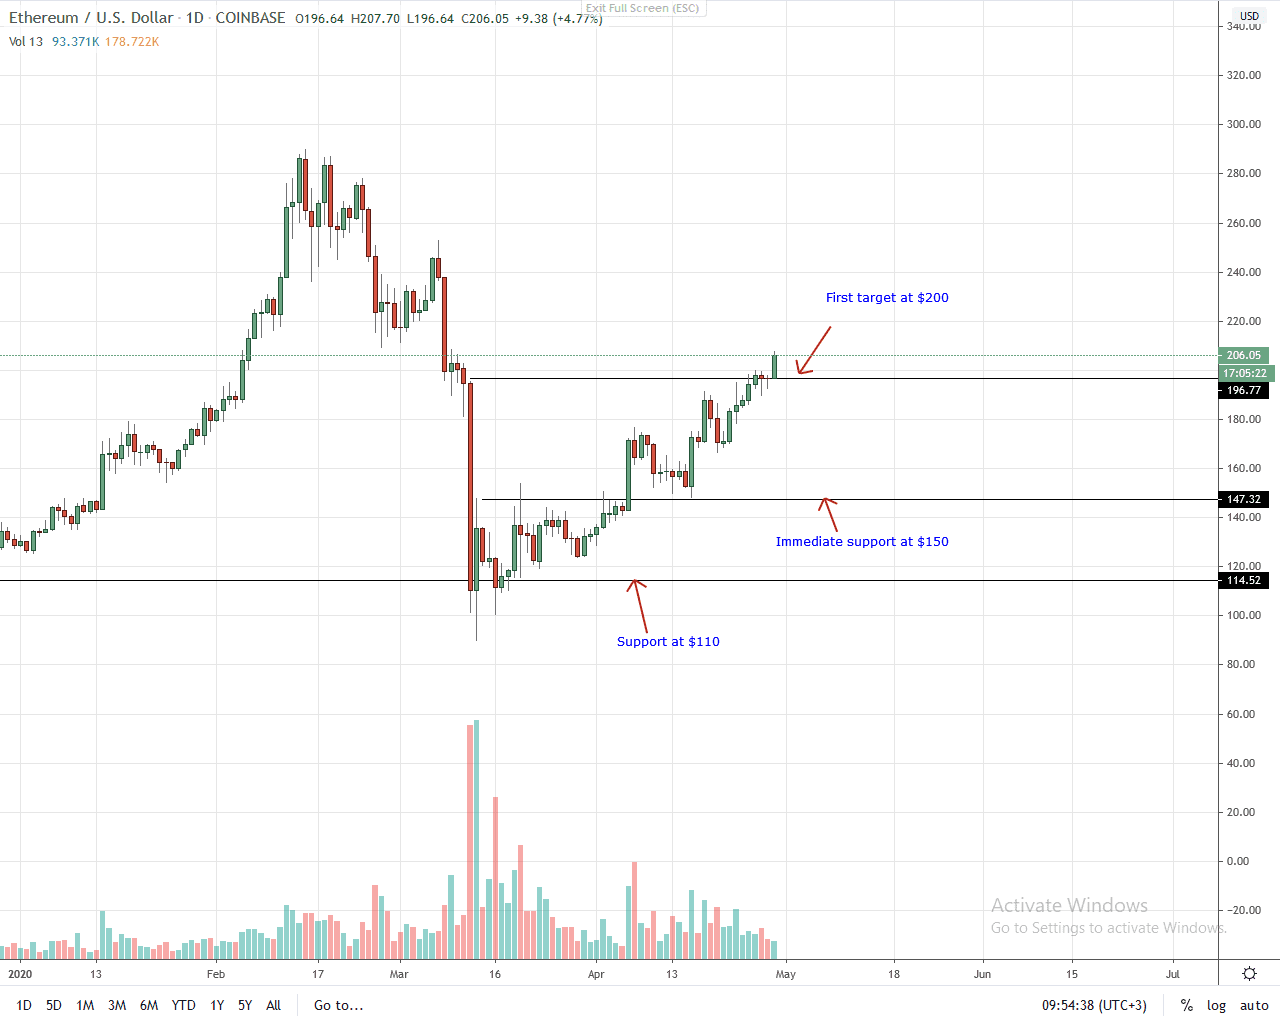 Ethereum Daily Chart for April 29